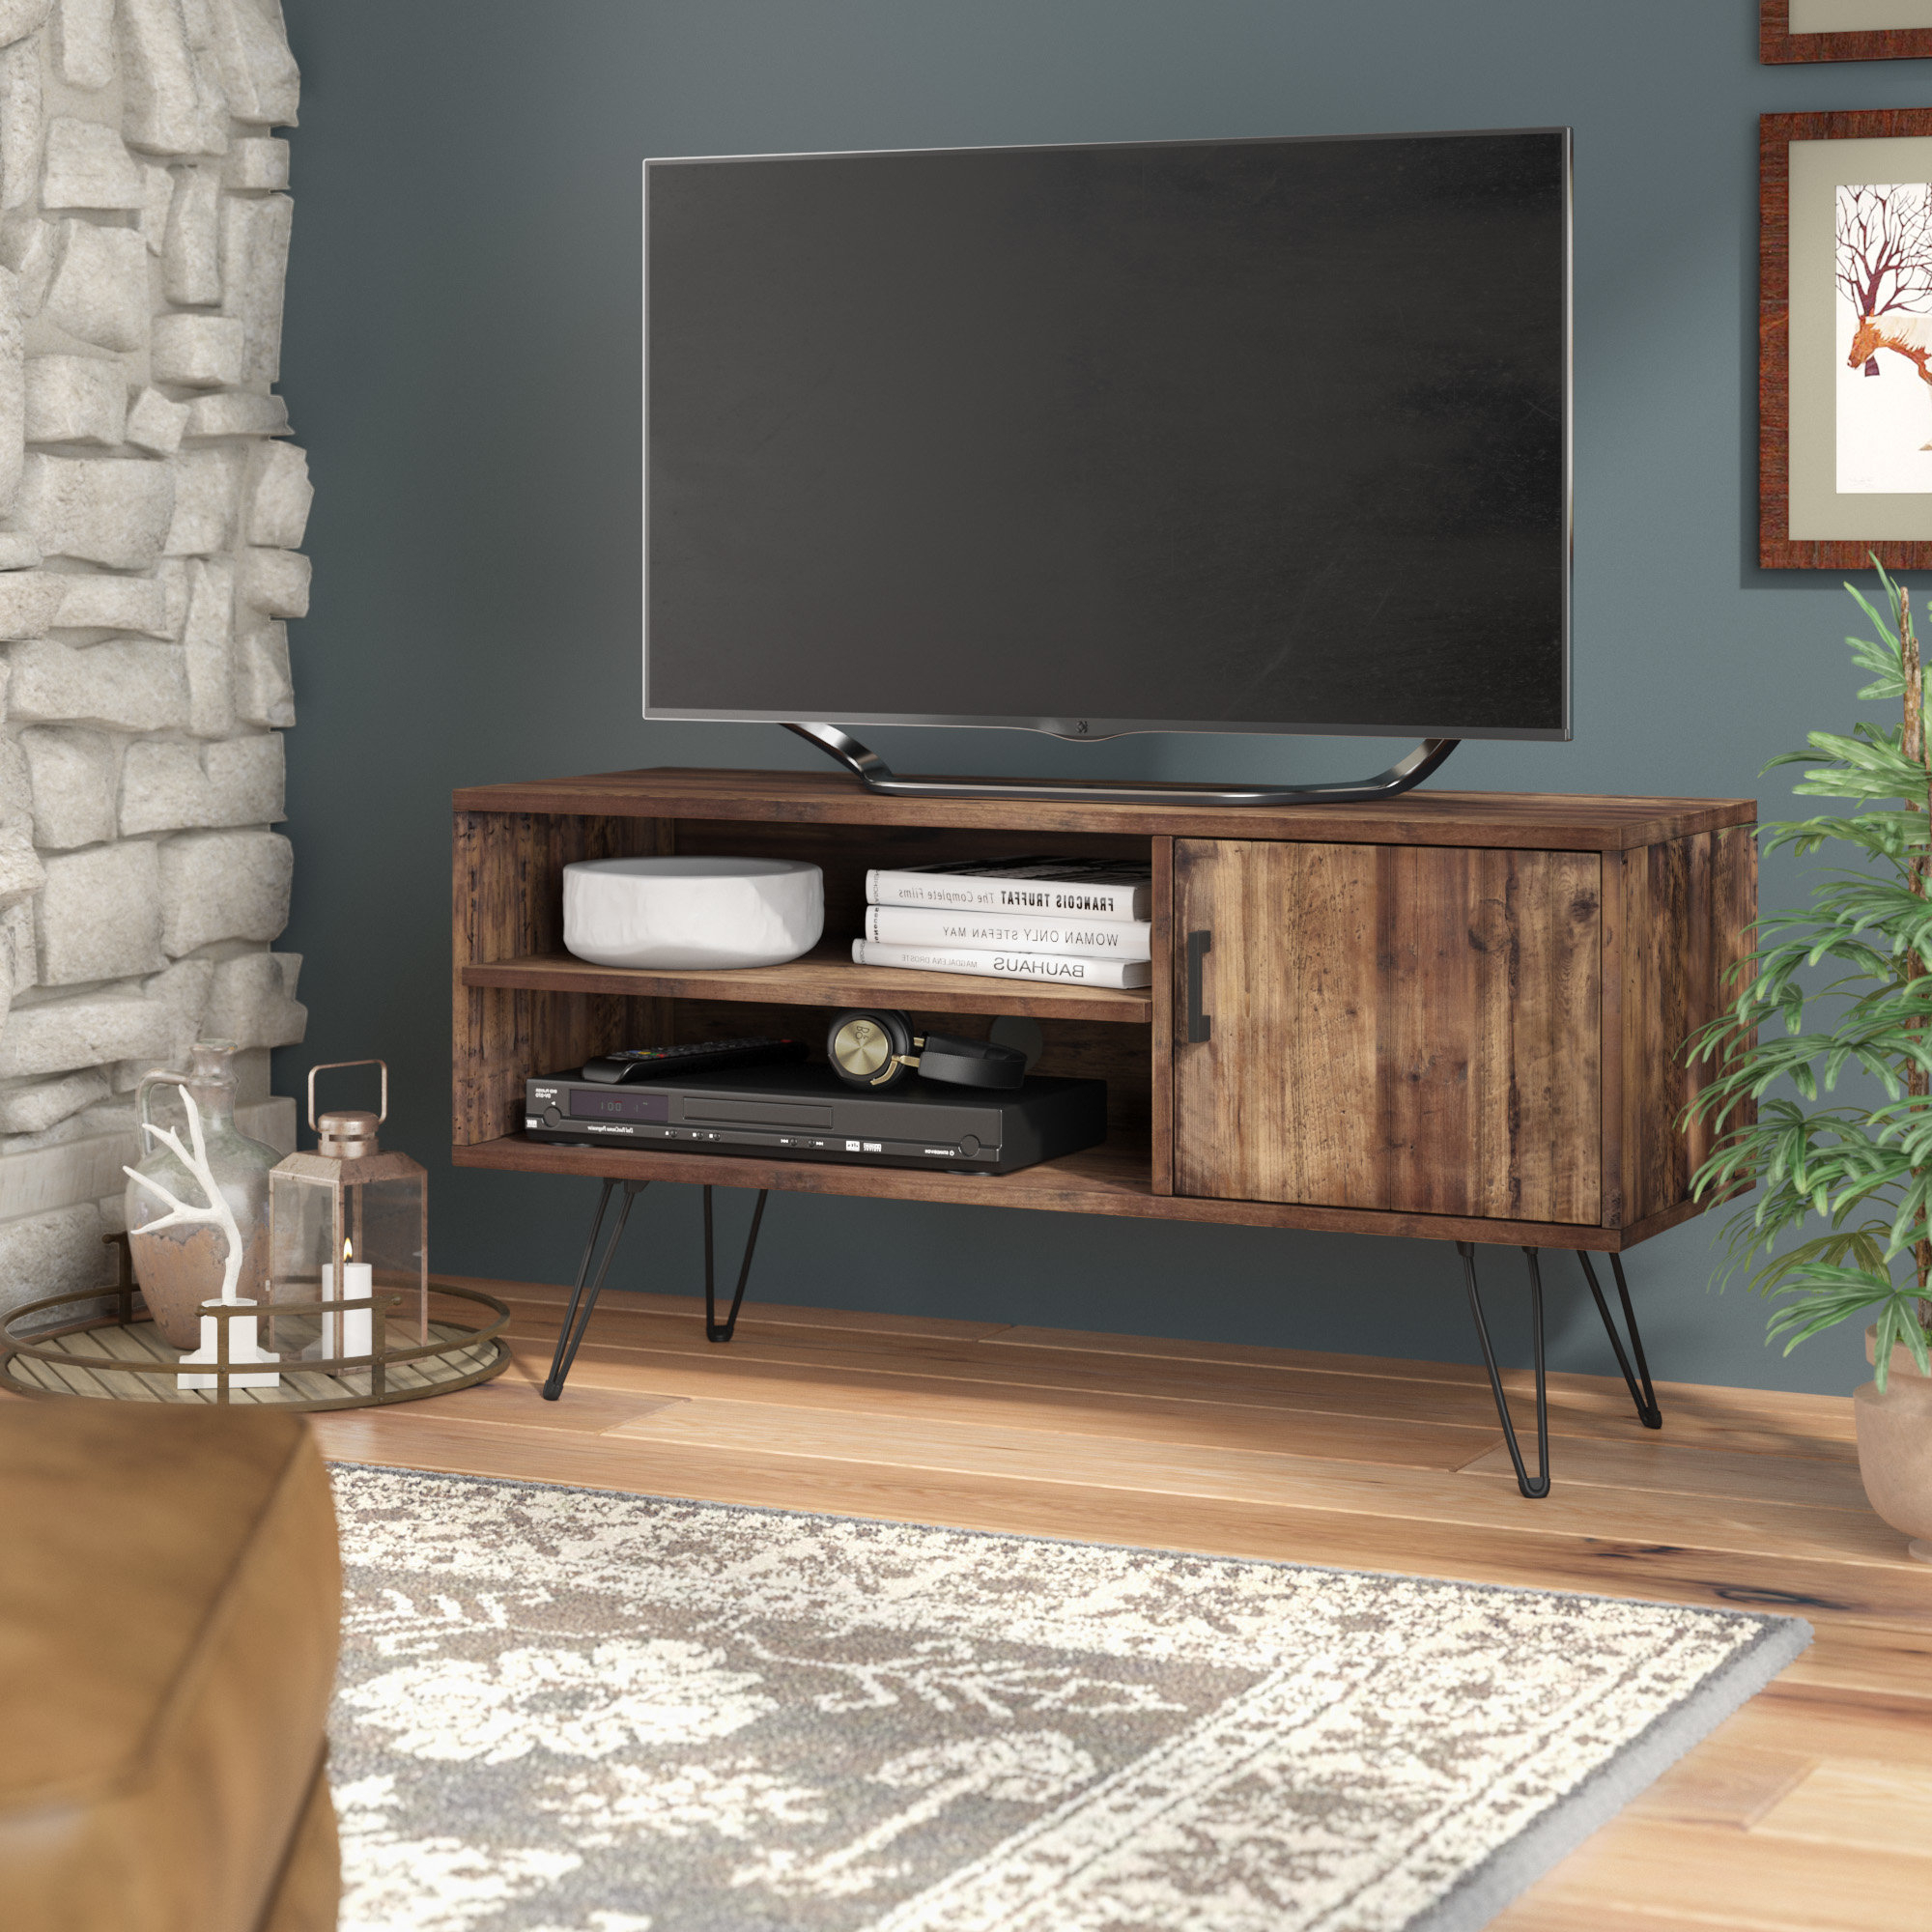 "Best And Newest Barclee Media Tv Stand For Tvs Up To 58"" In Ericka Tv Stands For Tvs Up To 42"" (View 7 of 20)"